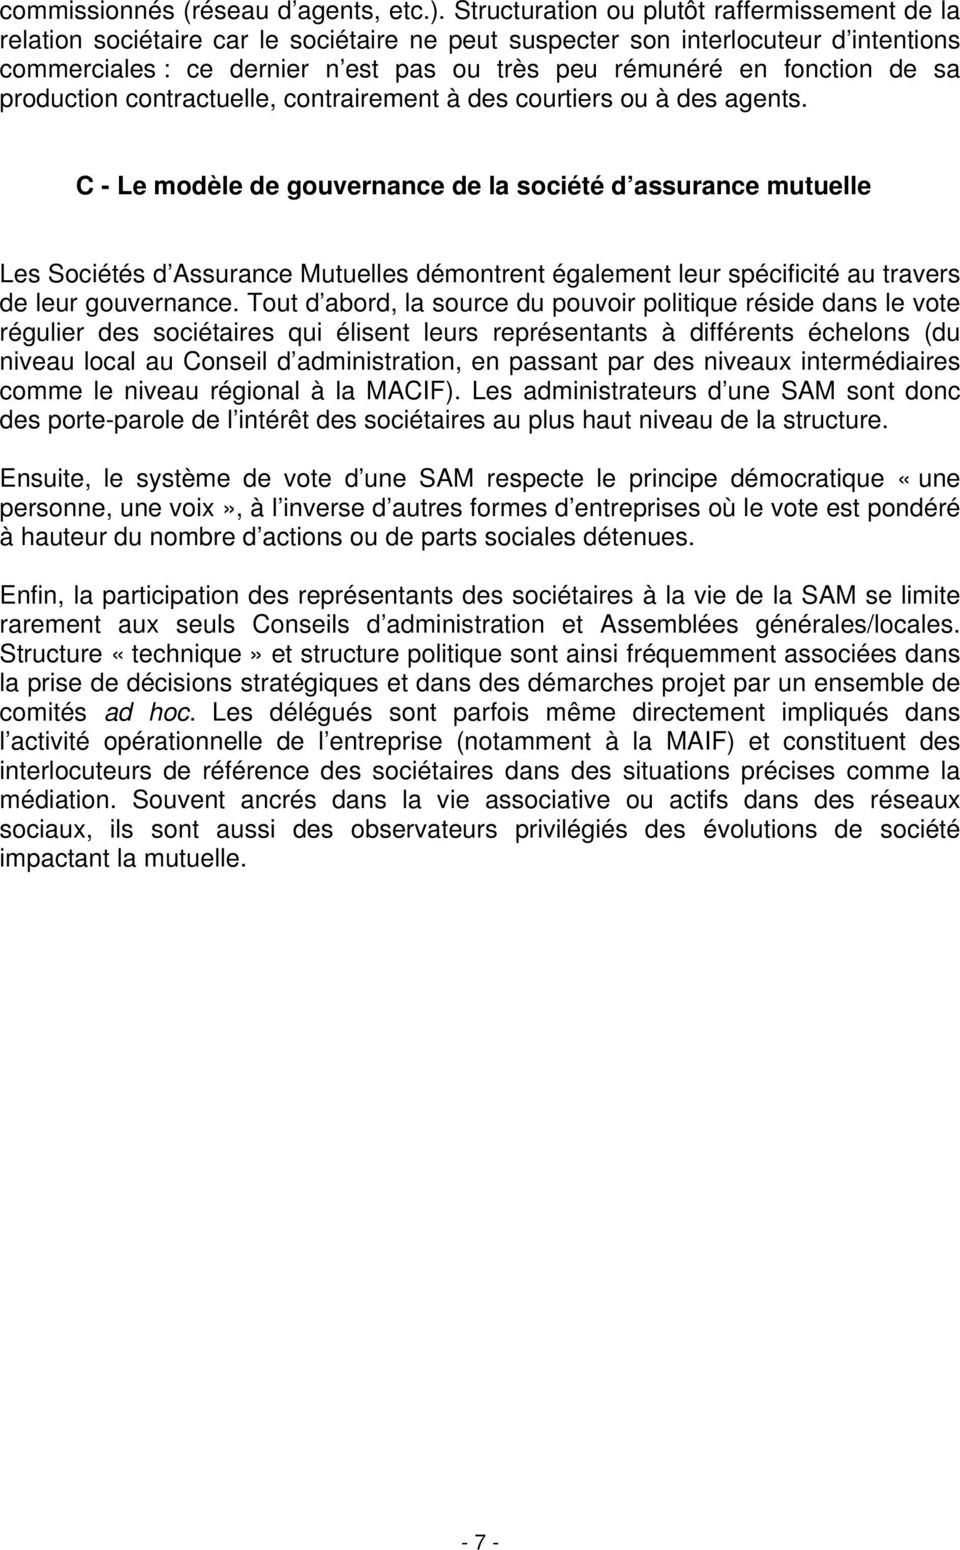 fonction de sa production contractuelle, contrairement à des courtiers ou à des agents.